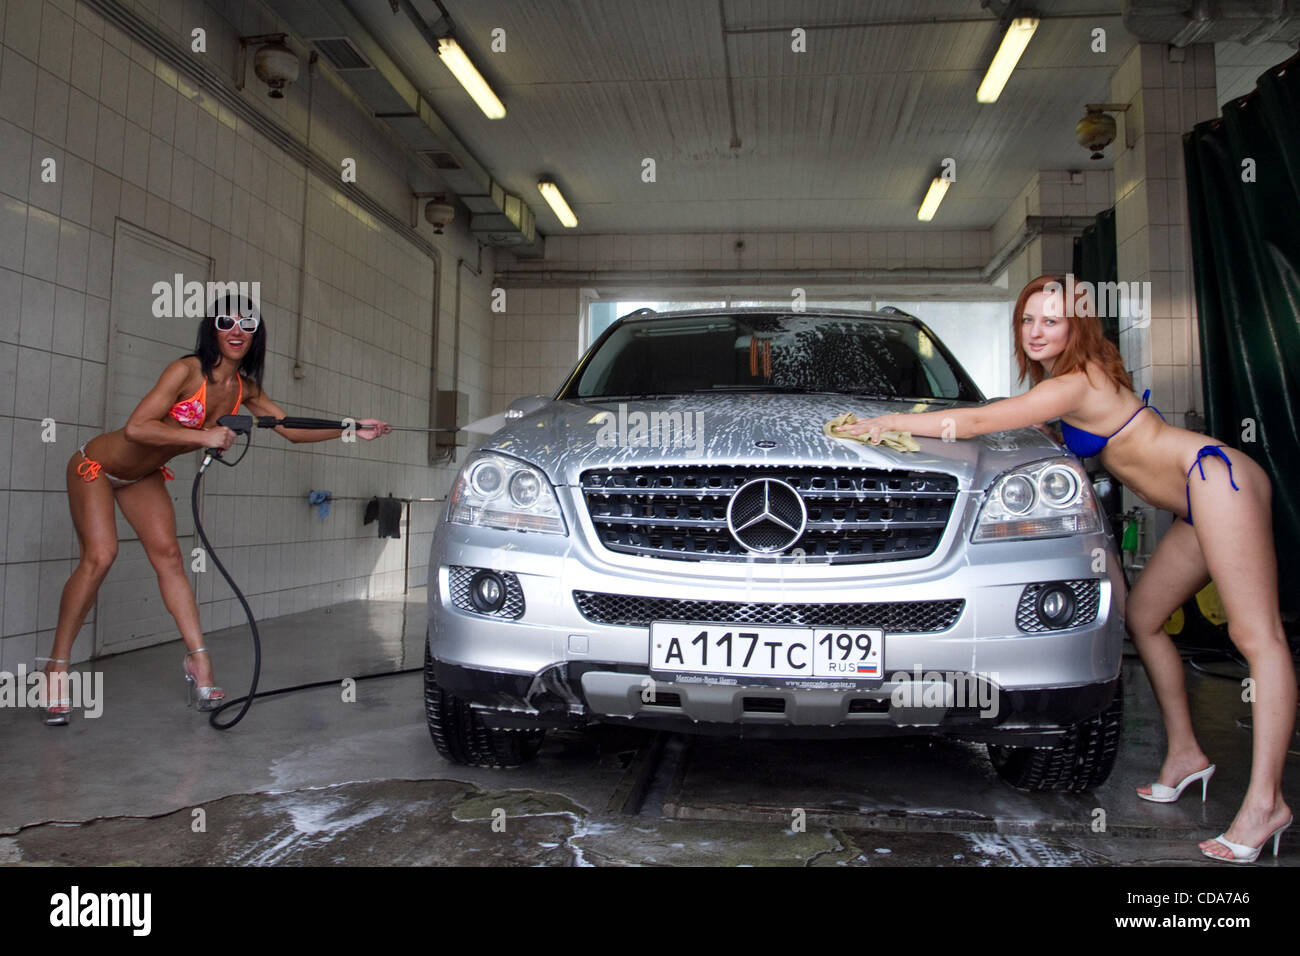 Bikini car wash erotic action at one of moscow s car wash for Mercedes benz car wash free